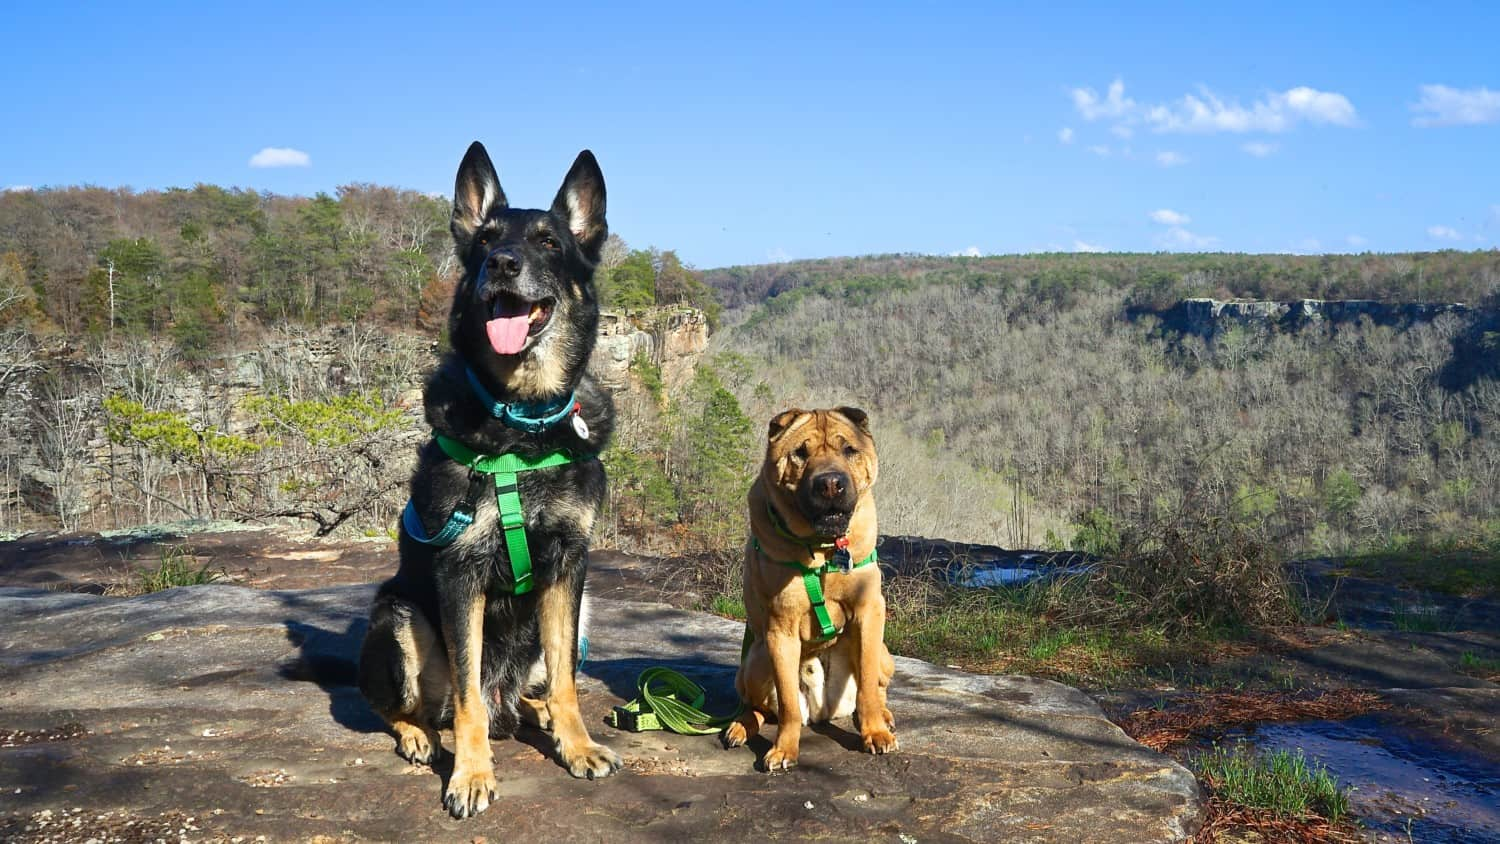 Alabama's Top Pet Friendly Attraction: Little River Canyon